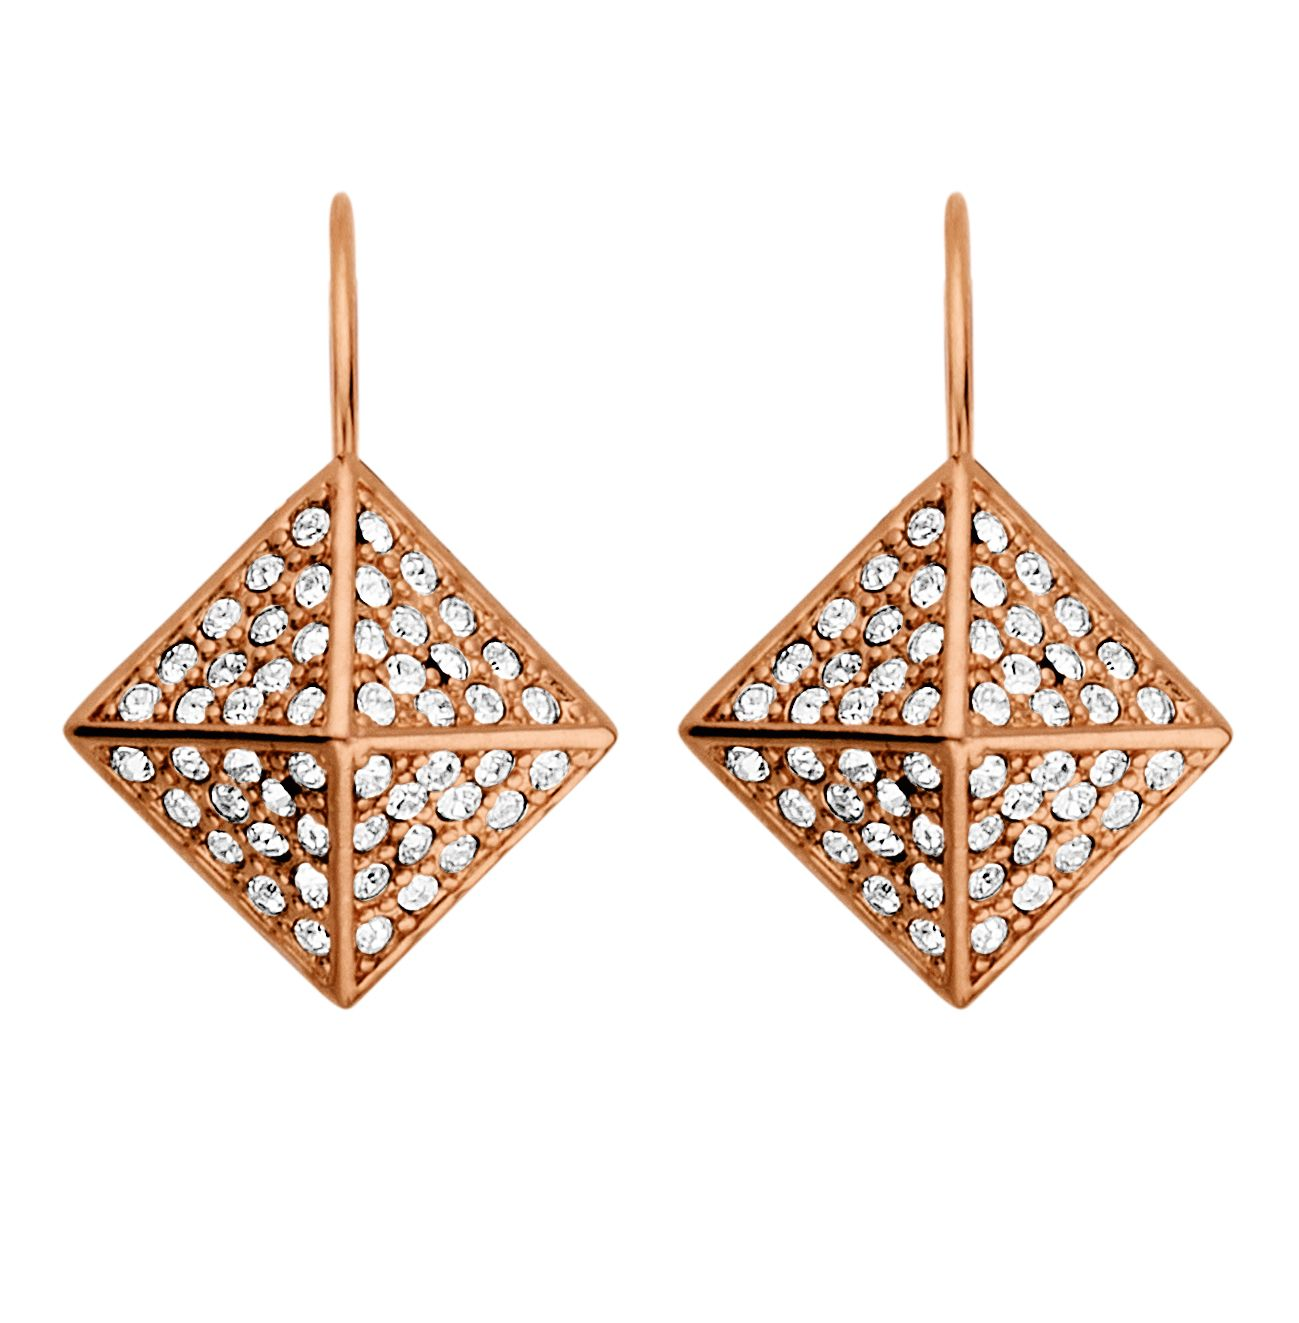 Kalfani rose gold earrings